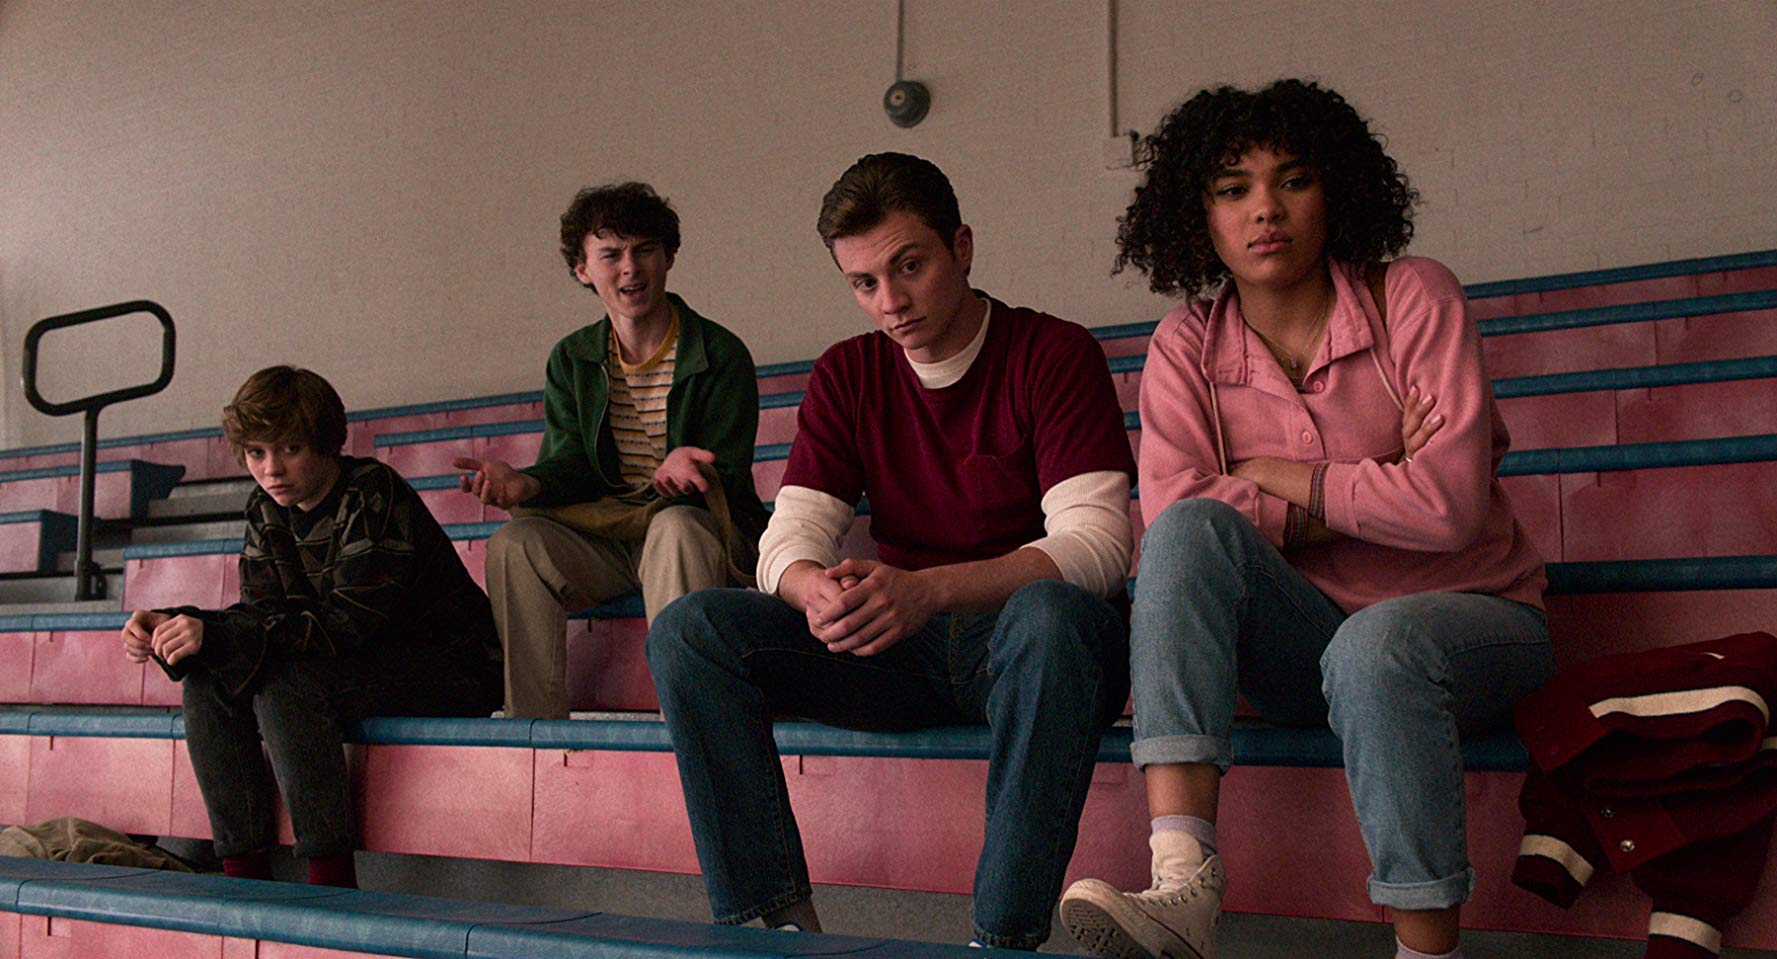 Syd, Stanley, Brad and Dina